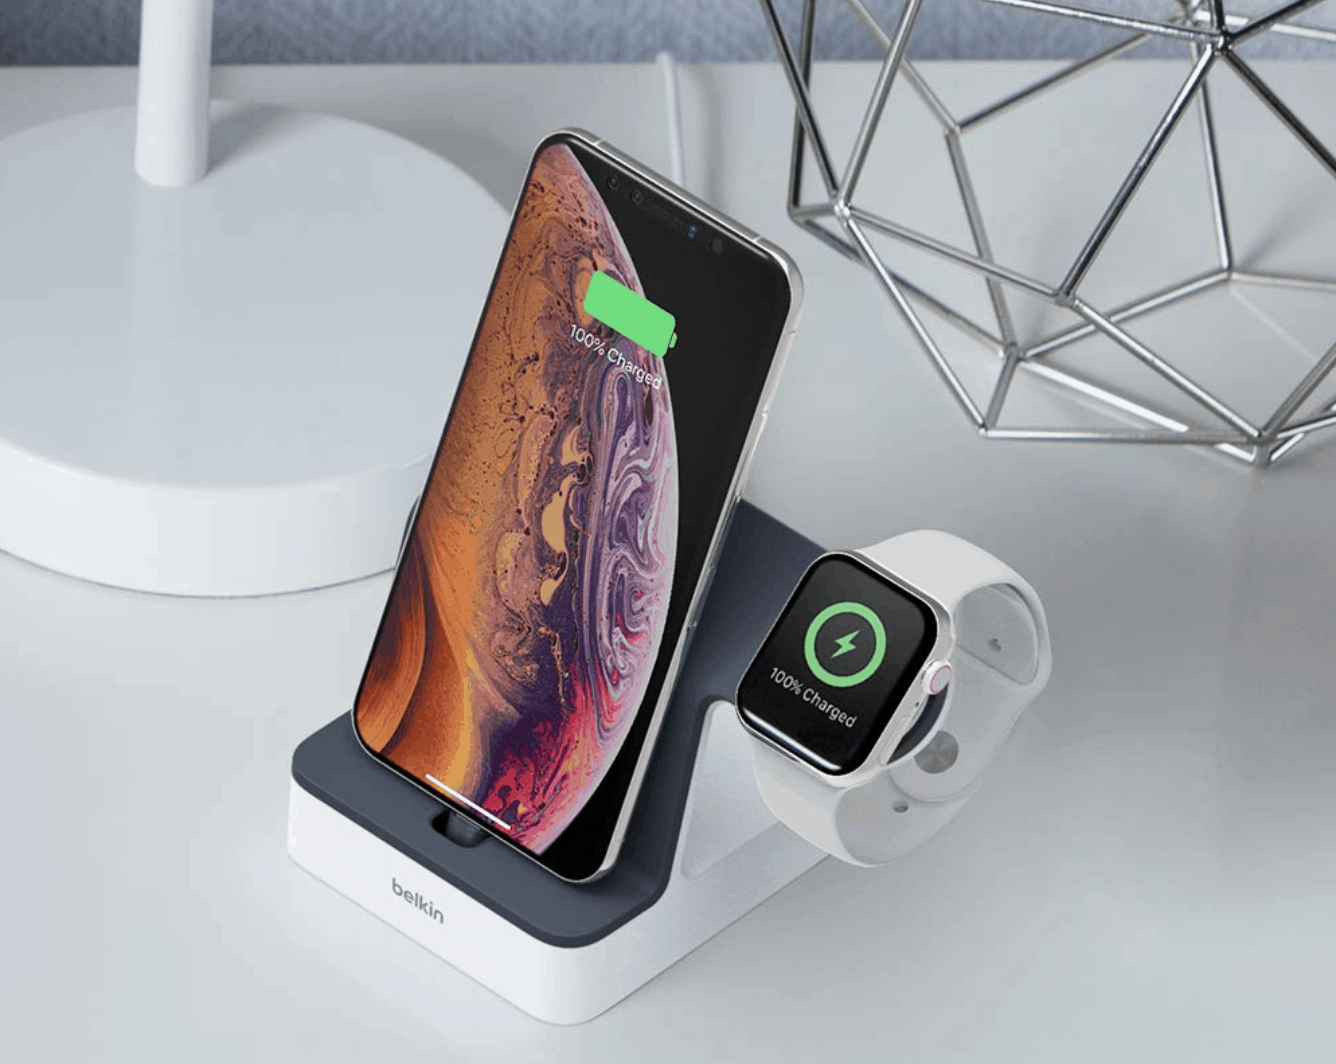 Juice Up Your Apple Watch and iPhone in Style with the Belkin Powerhouse at $20 Off